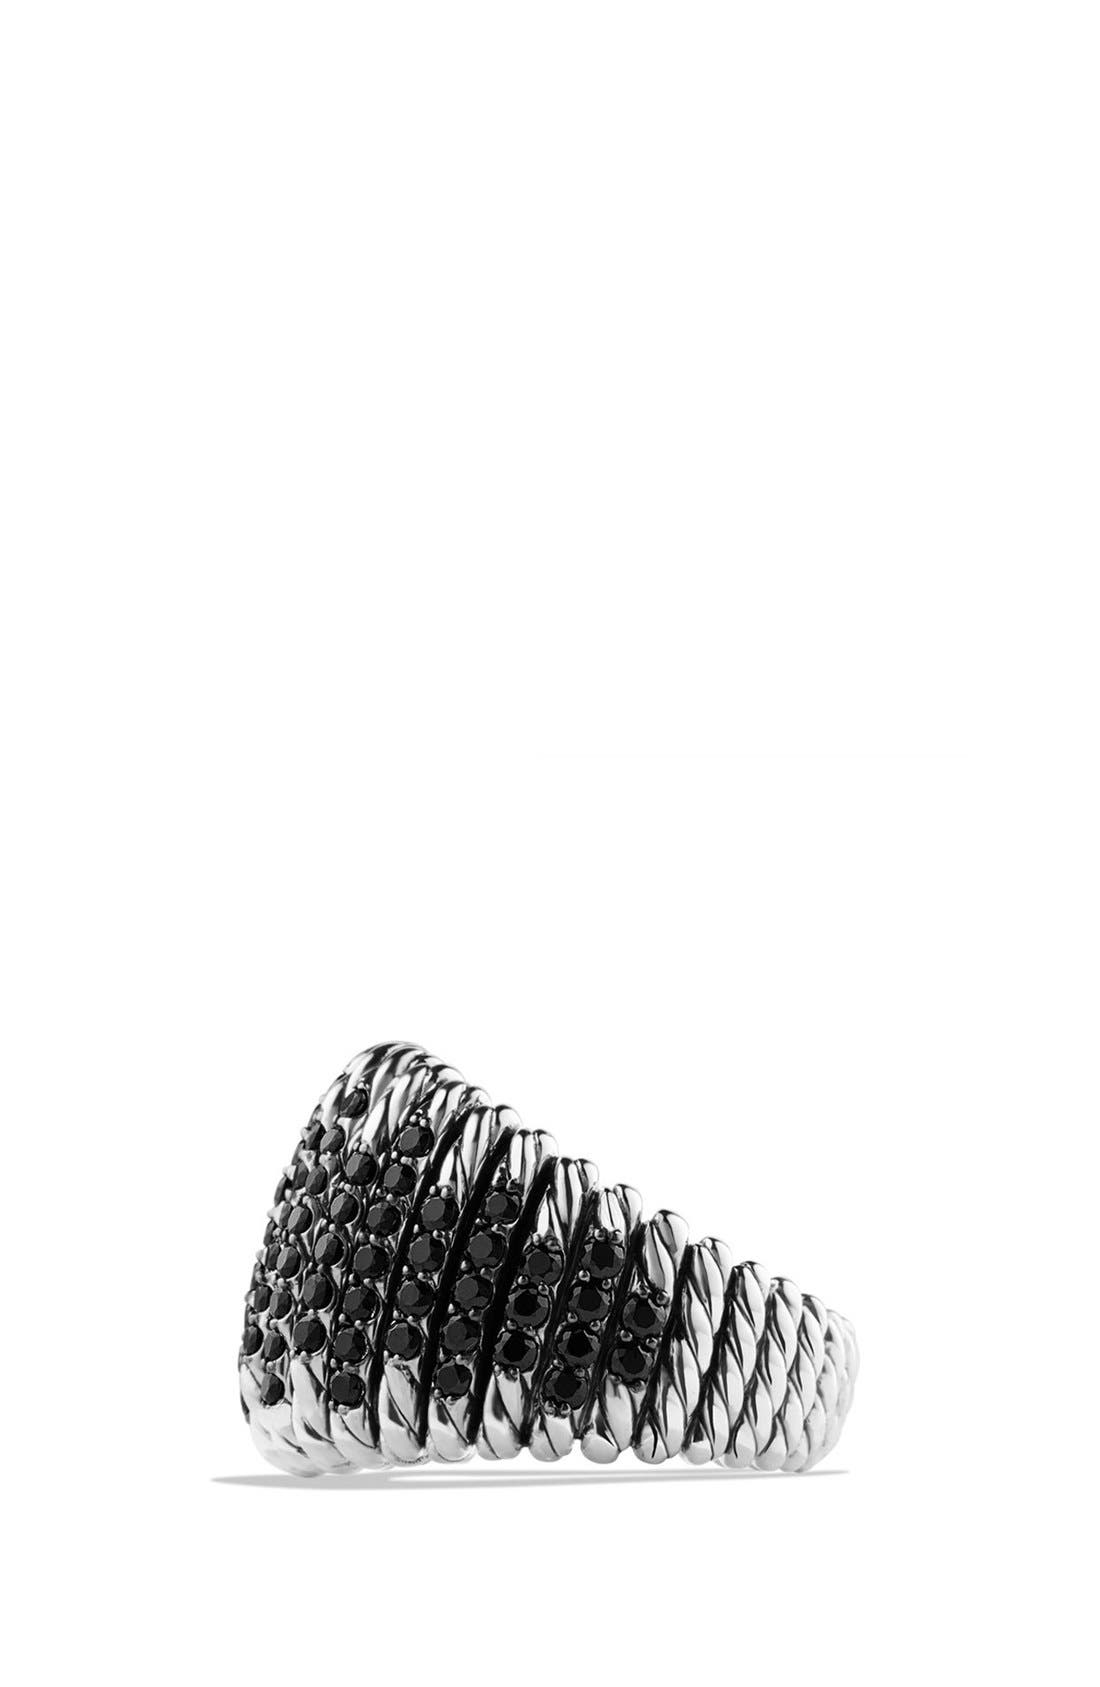 DAVID YURMAN,                             'Tempo' Ring with Spinel,                             Alternate thumbnail 2, color,                             BLACK SPINEL